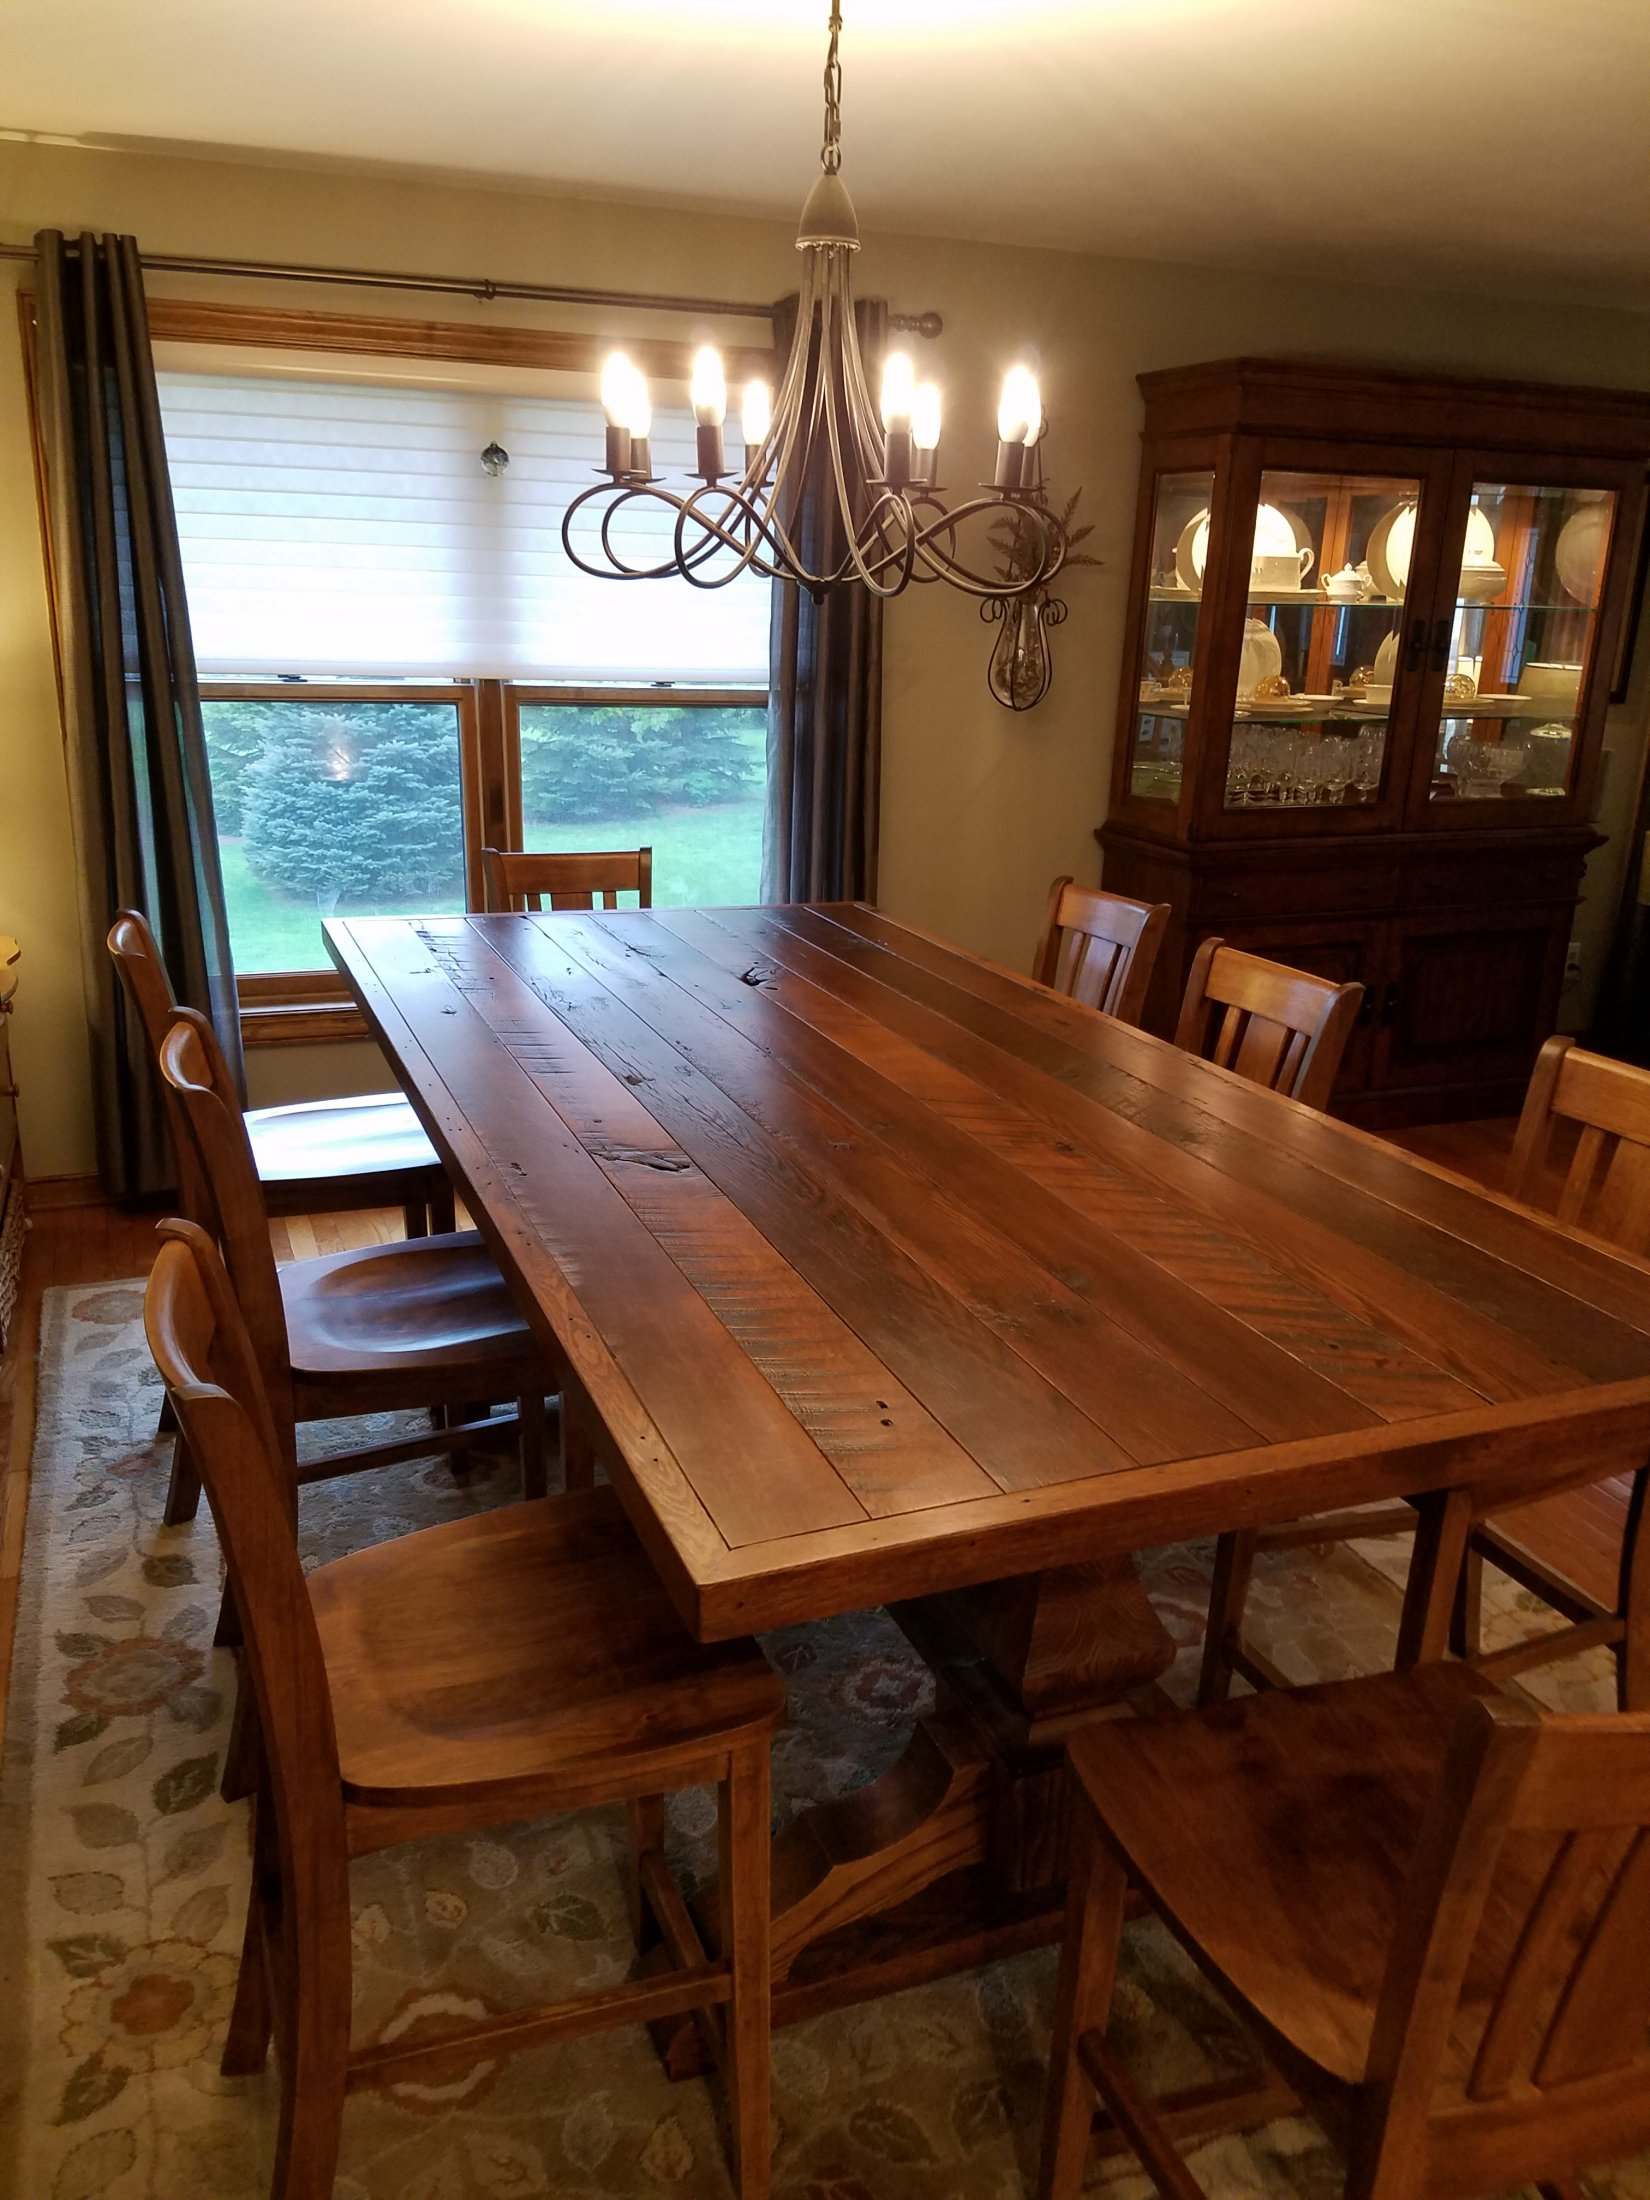 Reclaimed Rustic Oak Table & Chairs